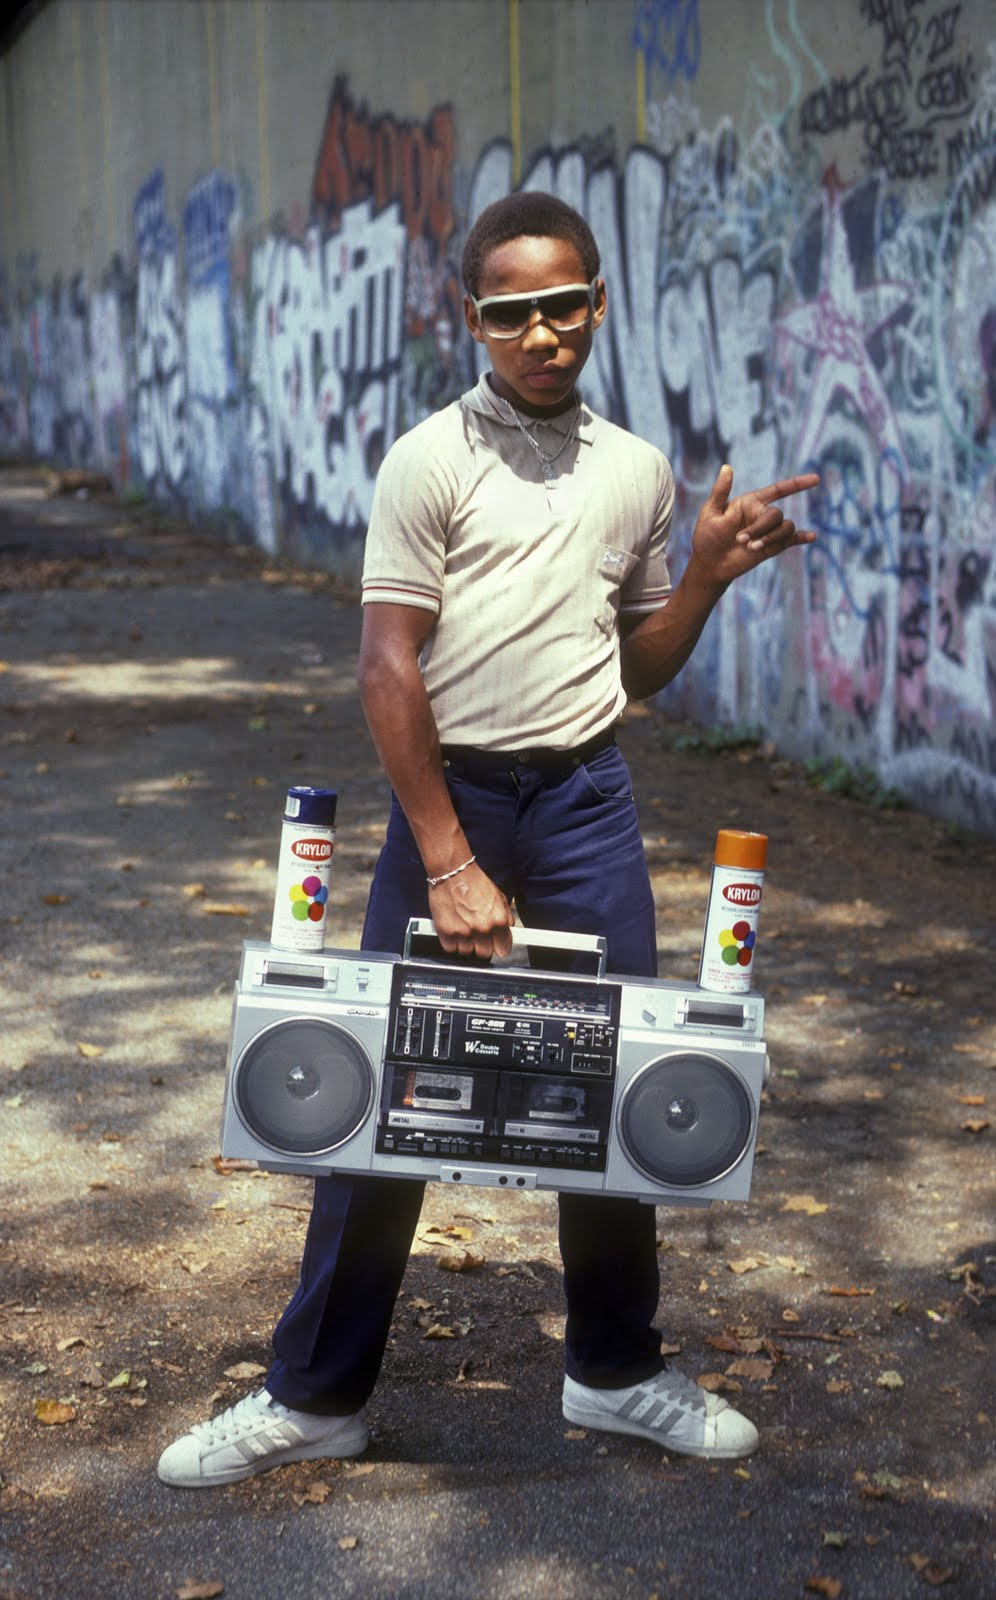 Rap hip hop 1980s NYC